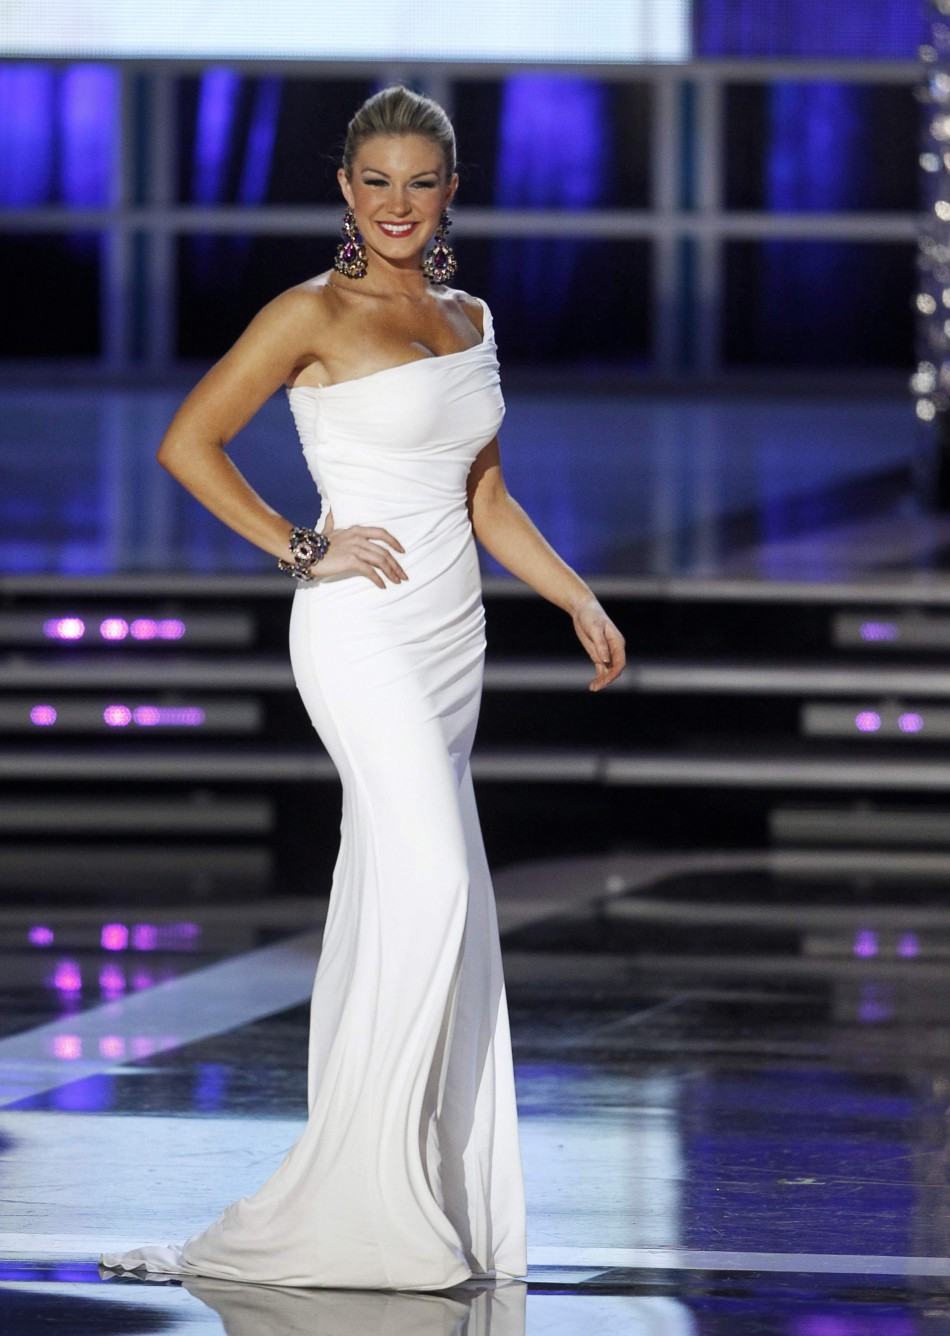 Mallory Hytes Hagan, Miss New York, competes in the evening gown portion of the Miss America Pageant in Las Vegas